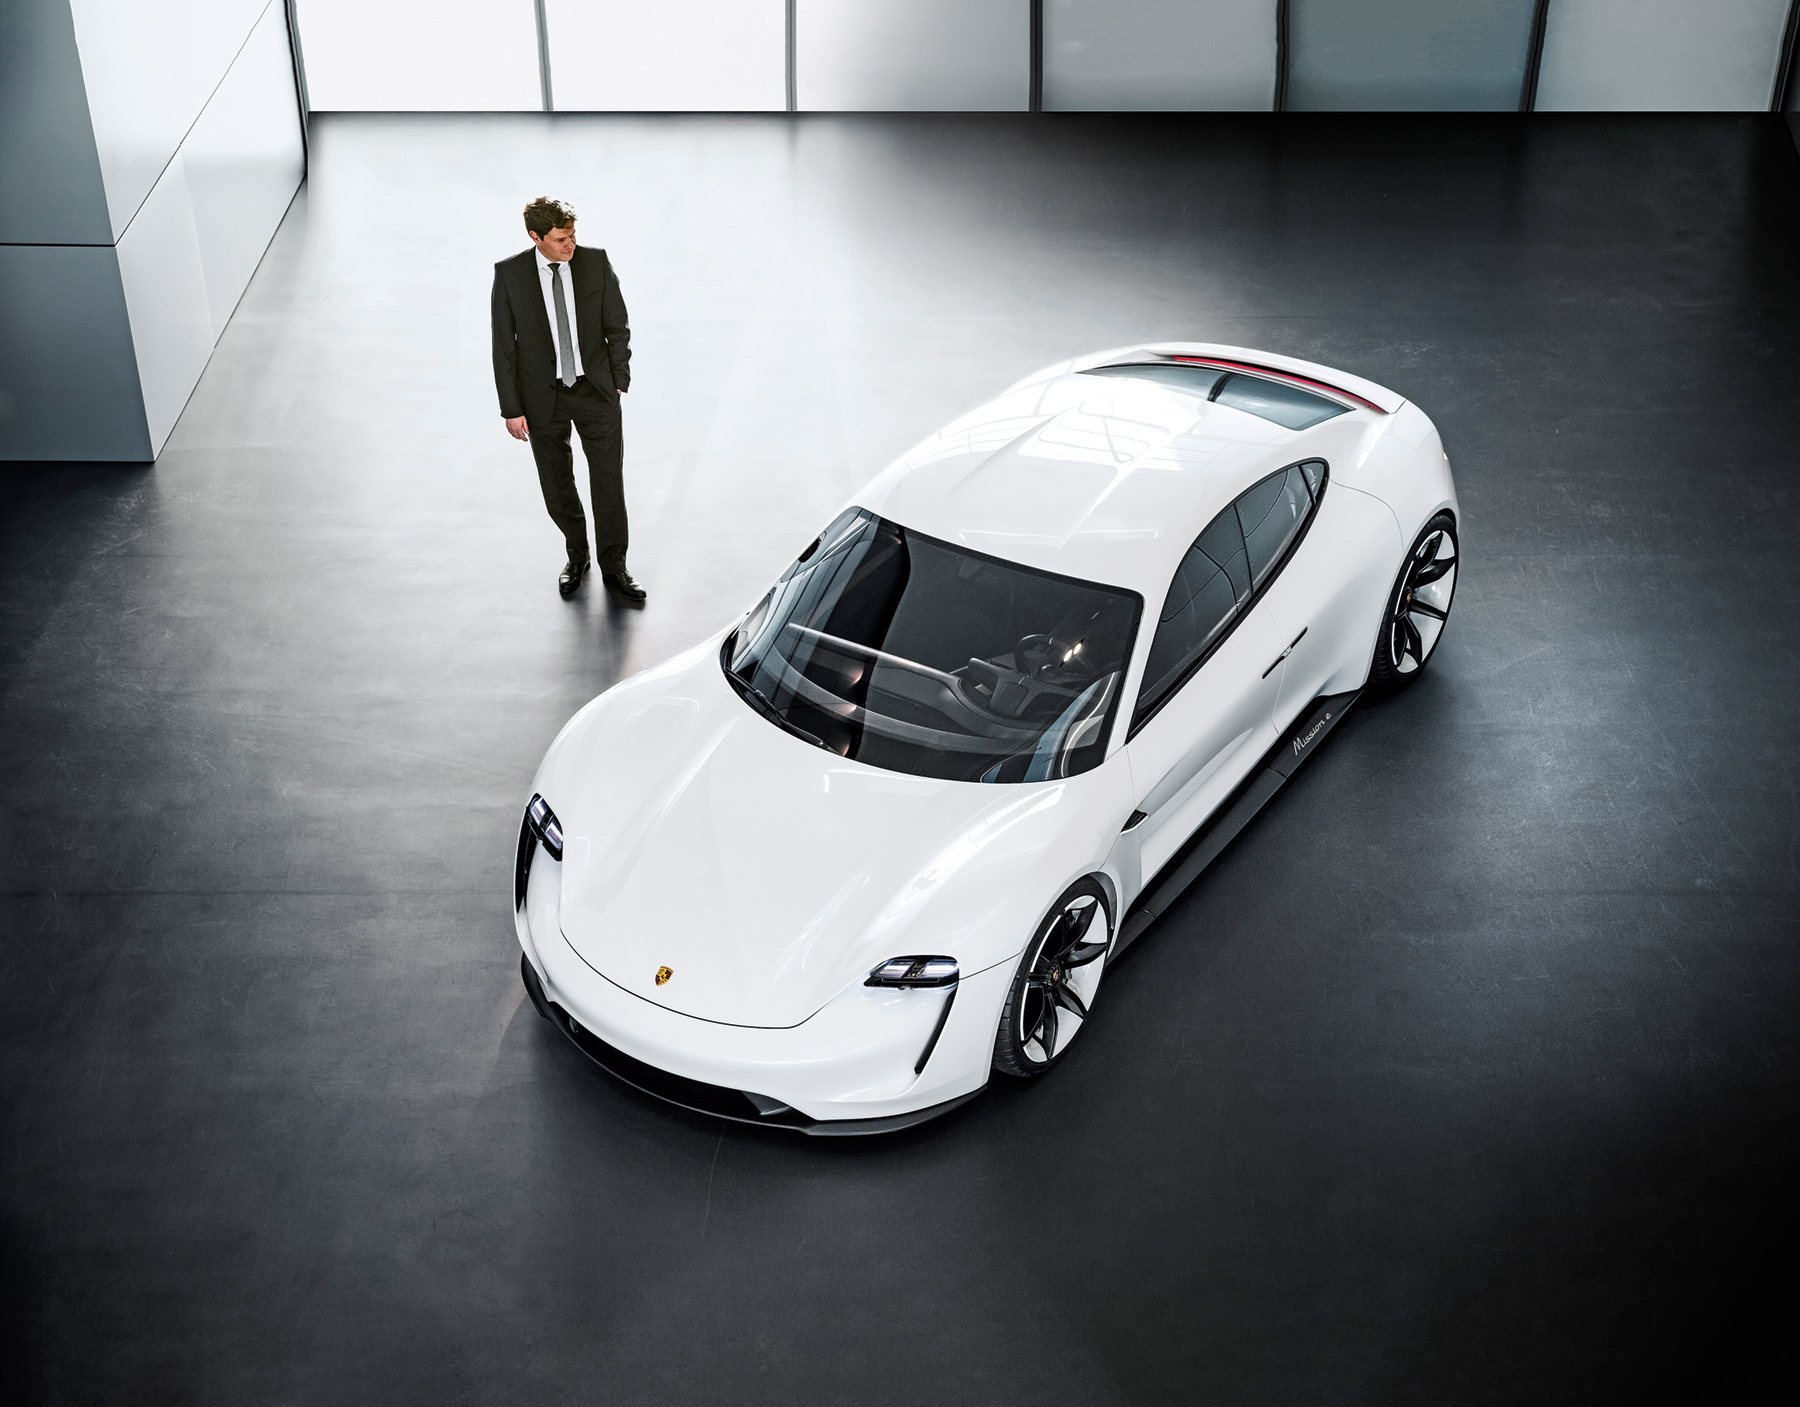 This all-electric sedan with all-wheel-drive, is based on the company's Missions E concept